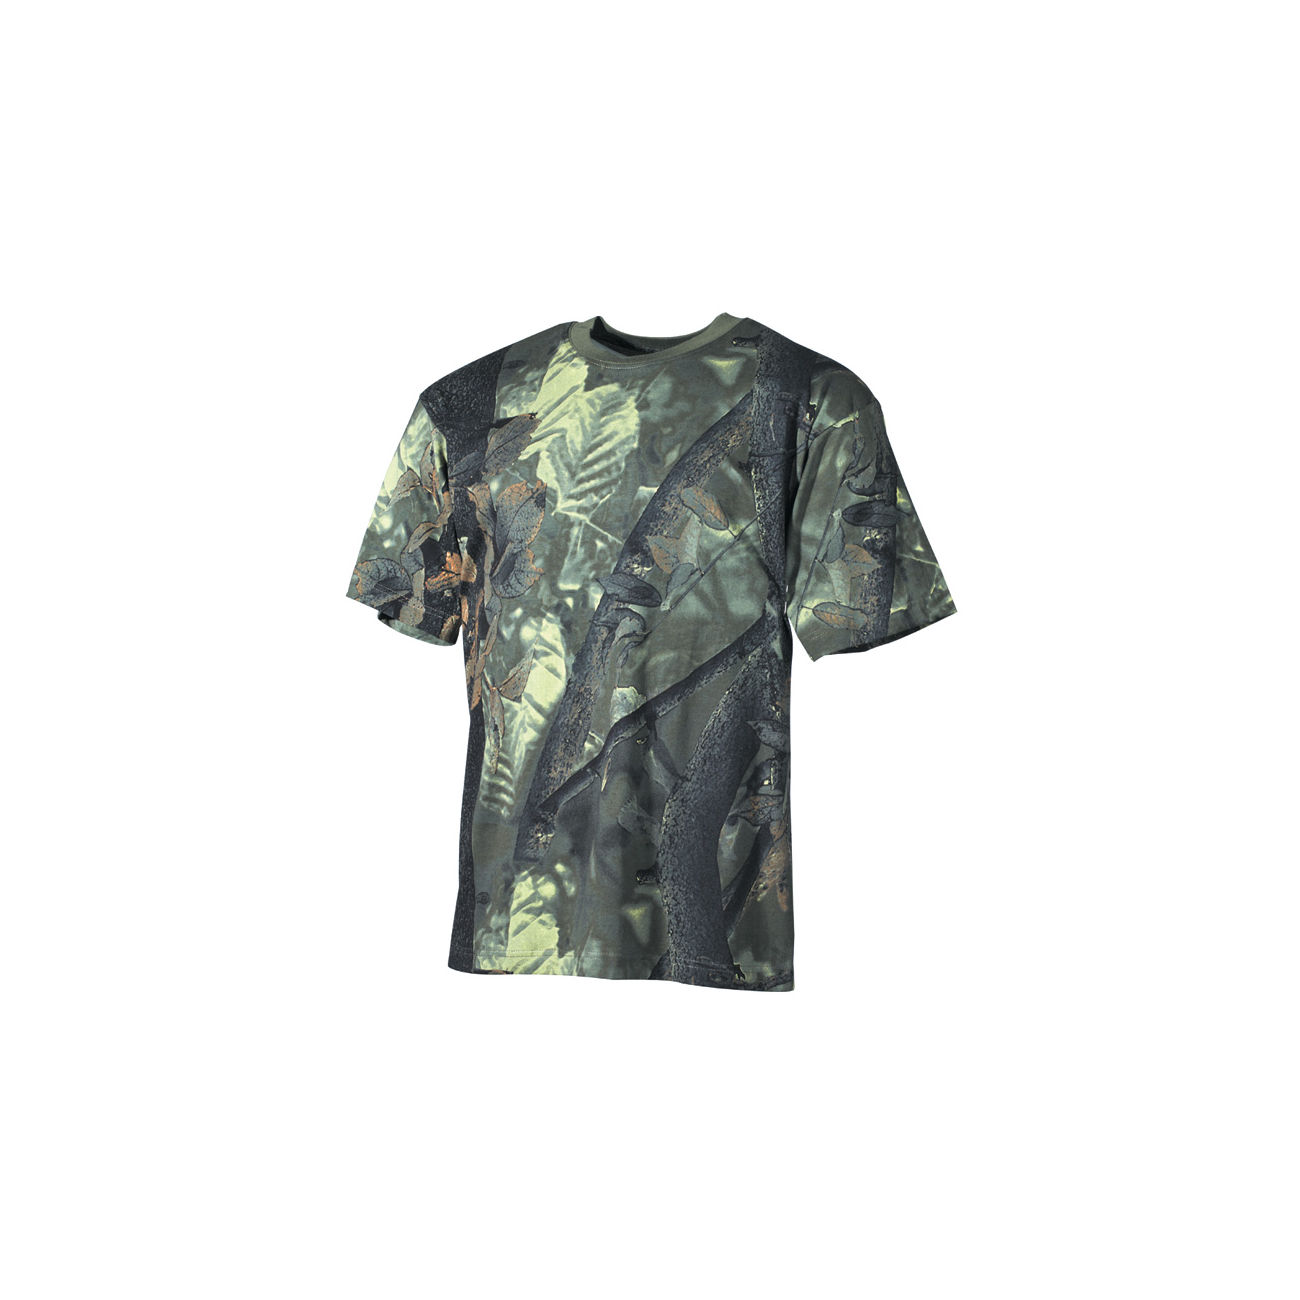 T-Shirt Tarnshirt hunter grün MFH 0